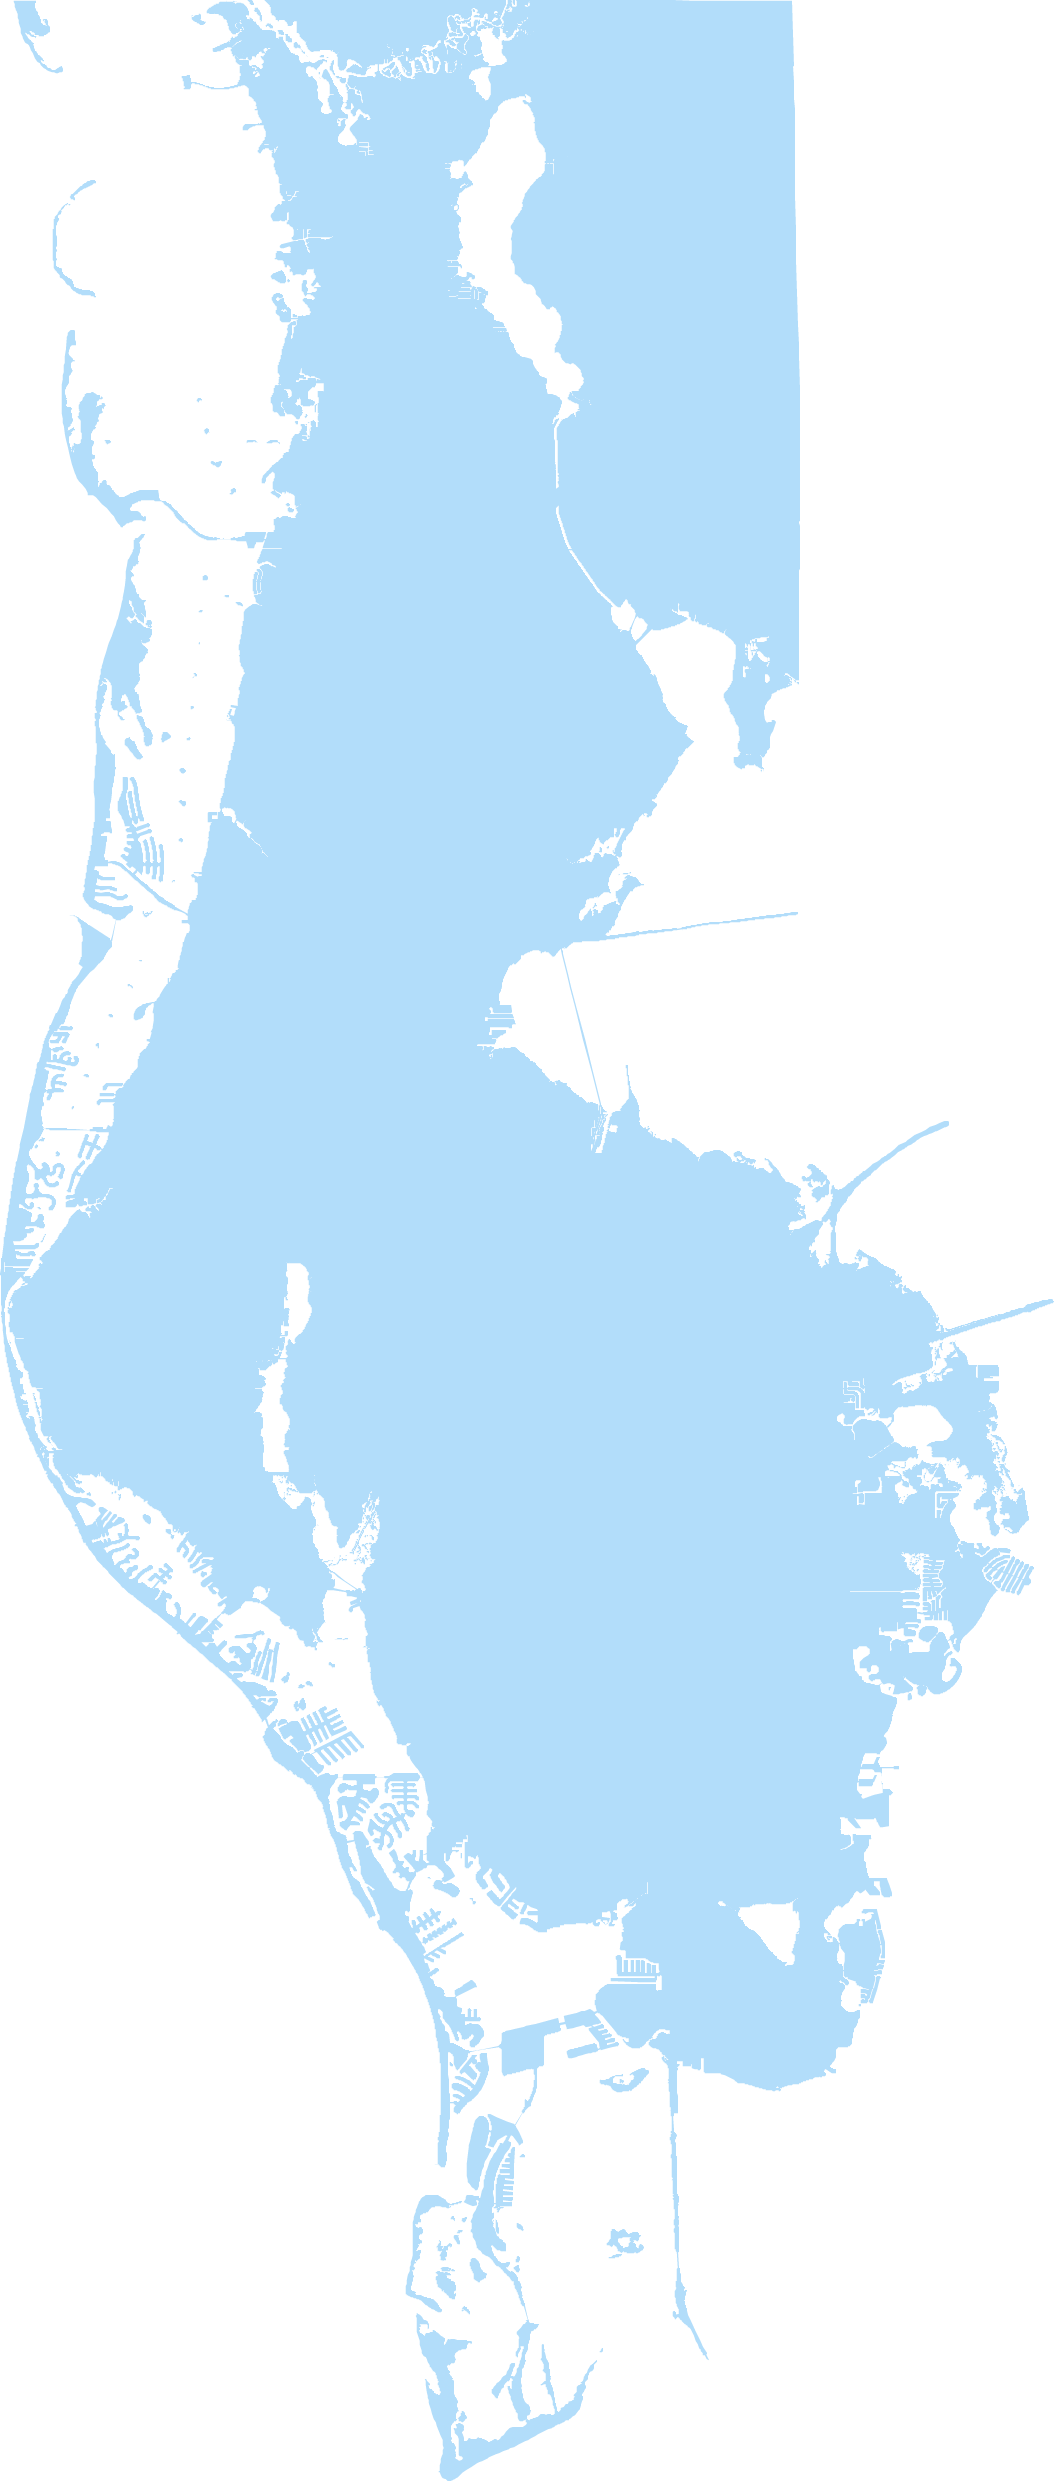 County Boundary_blue_40%transparent